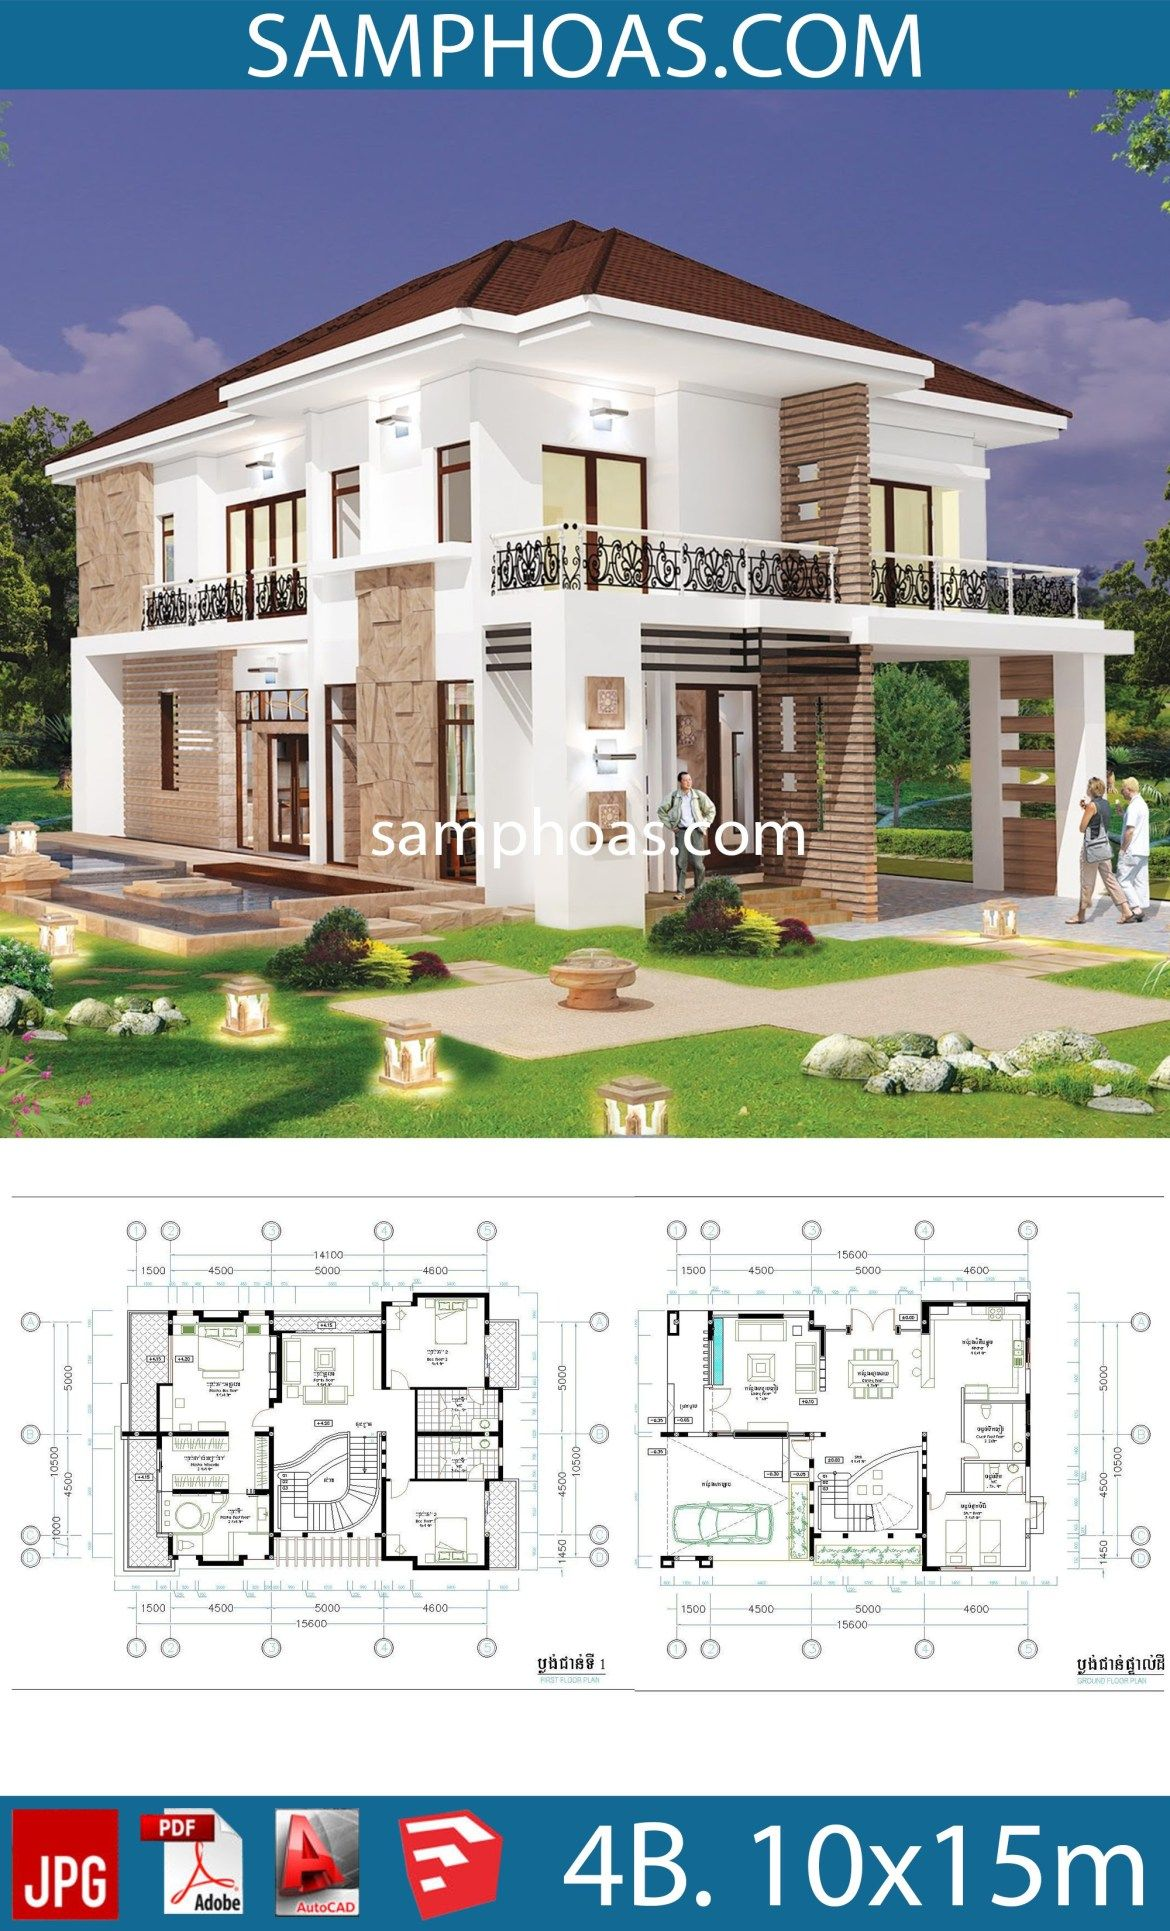 4 Bedroom Home Plan Full Exterior And Interior 10x15 6m Samphoas Plansearch Coastal House Plans House Designs Exterior House Plans